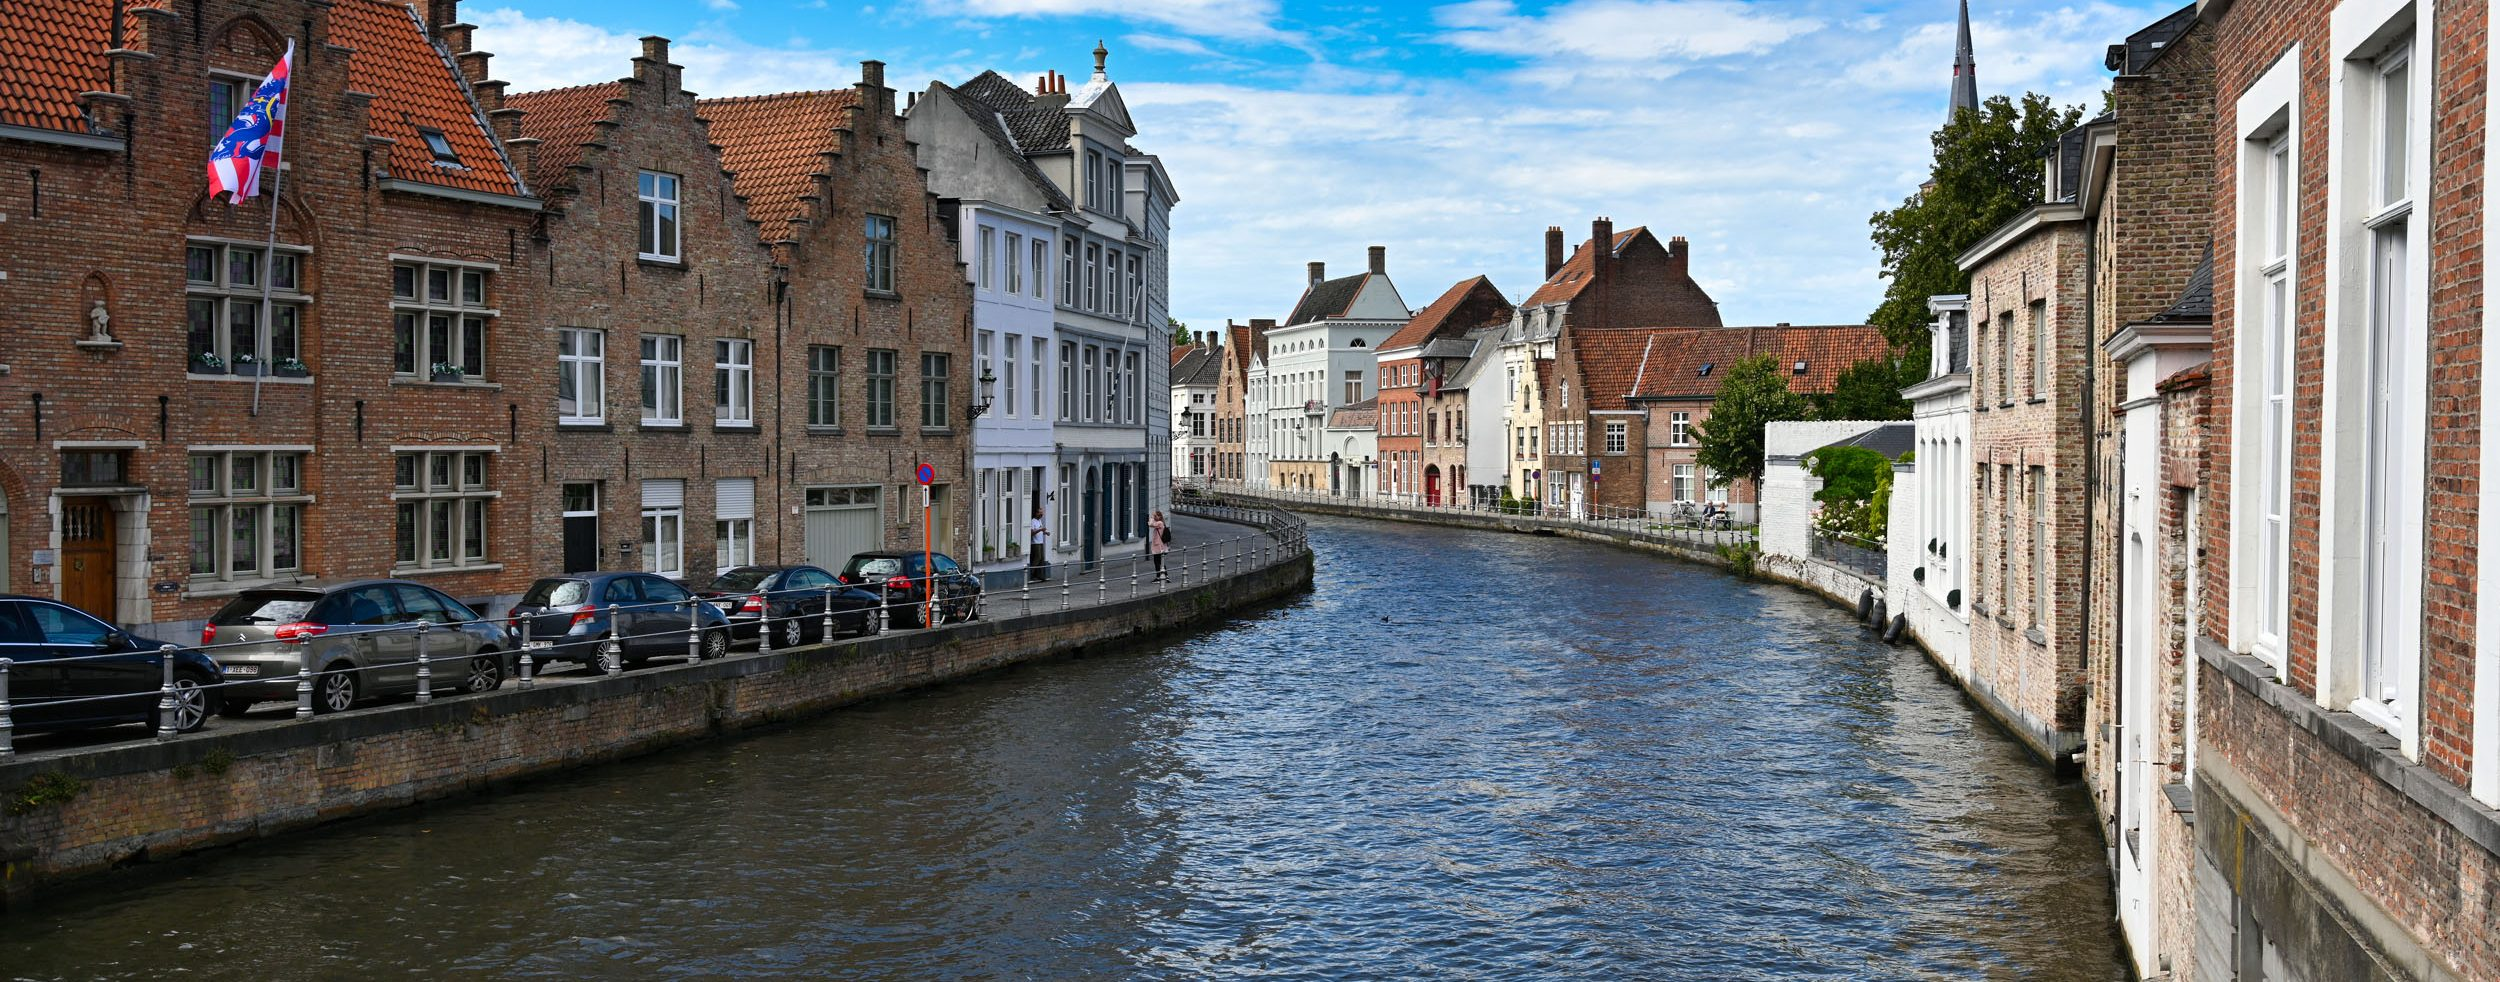 Gracht in Brügge